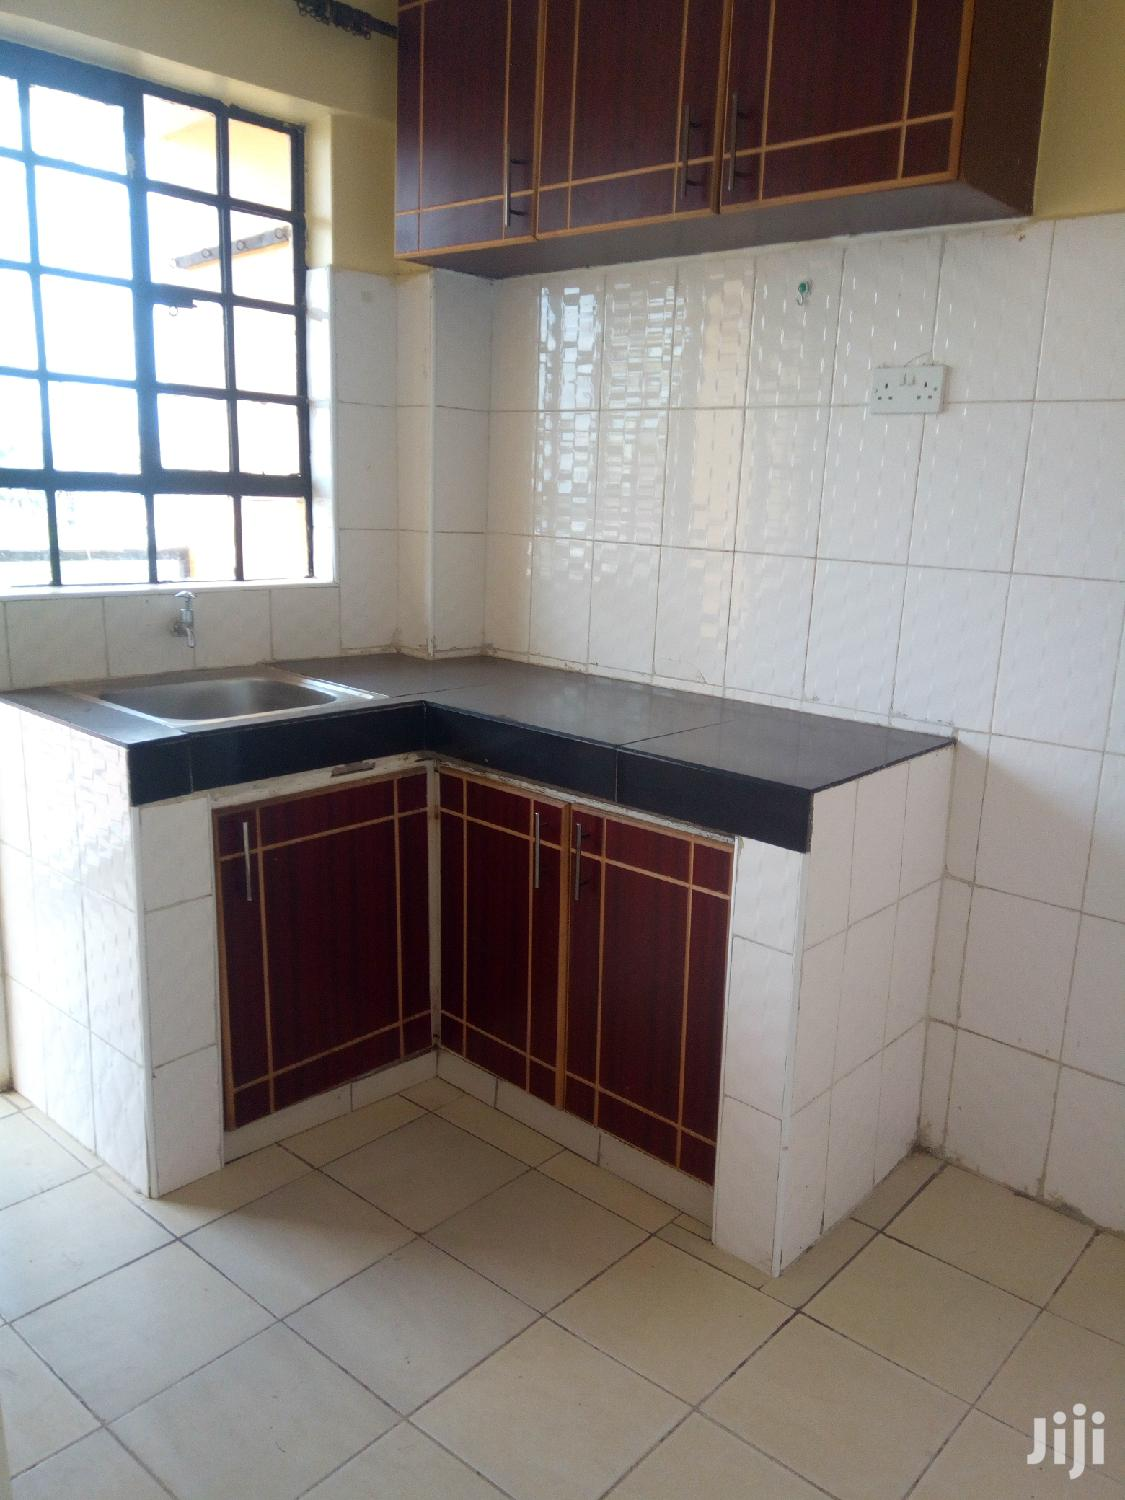 Executive Bed Sitter to Let in South B | Houses & Apartments For Rent for sale in South B (Makadara), Nairobi, Kenya